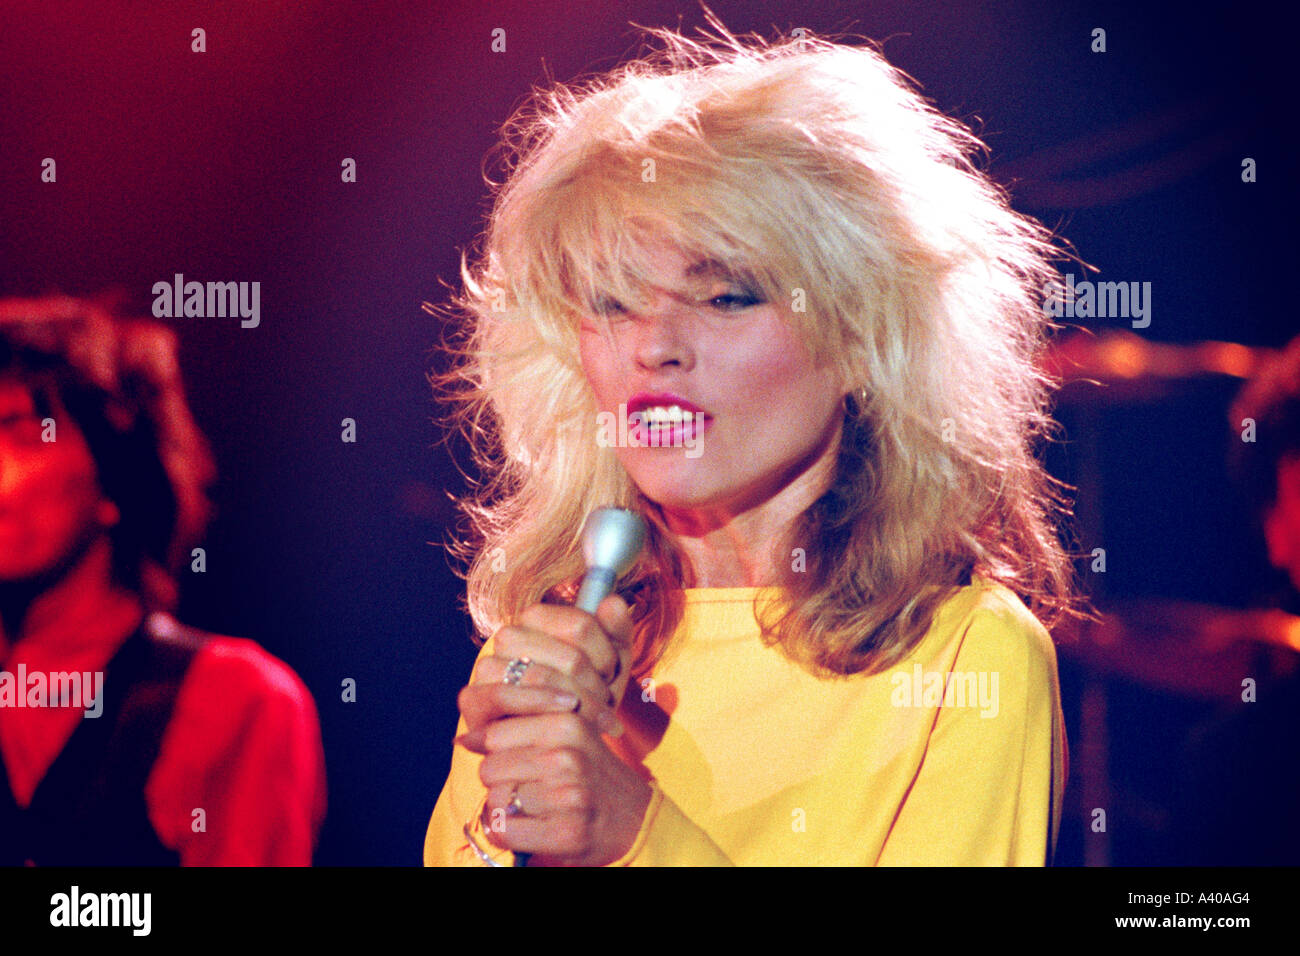 Debbie Harry of pop group Blondie performing Picture This PER0122 - Stock Image